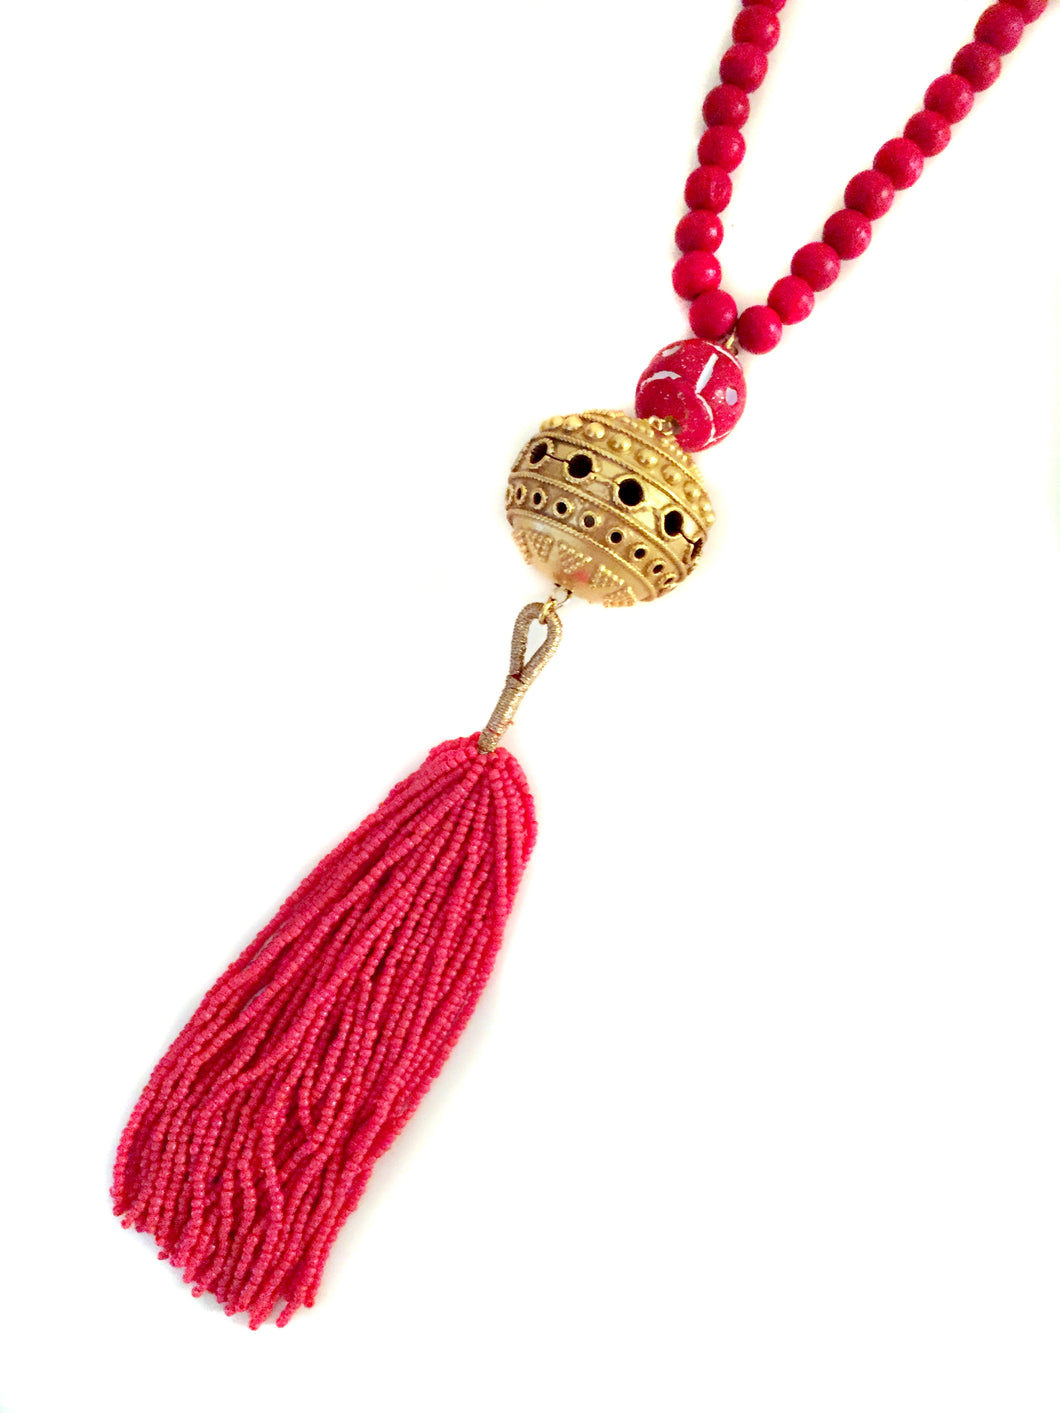 Dia Necklace in Red